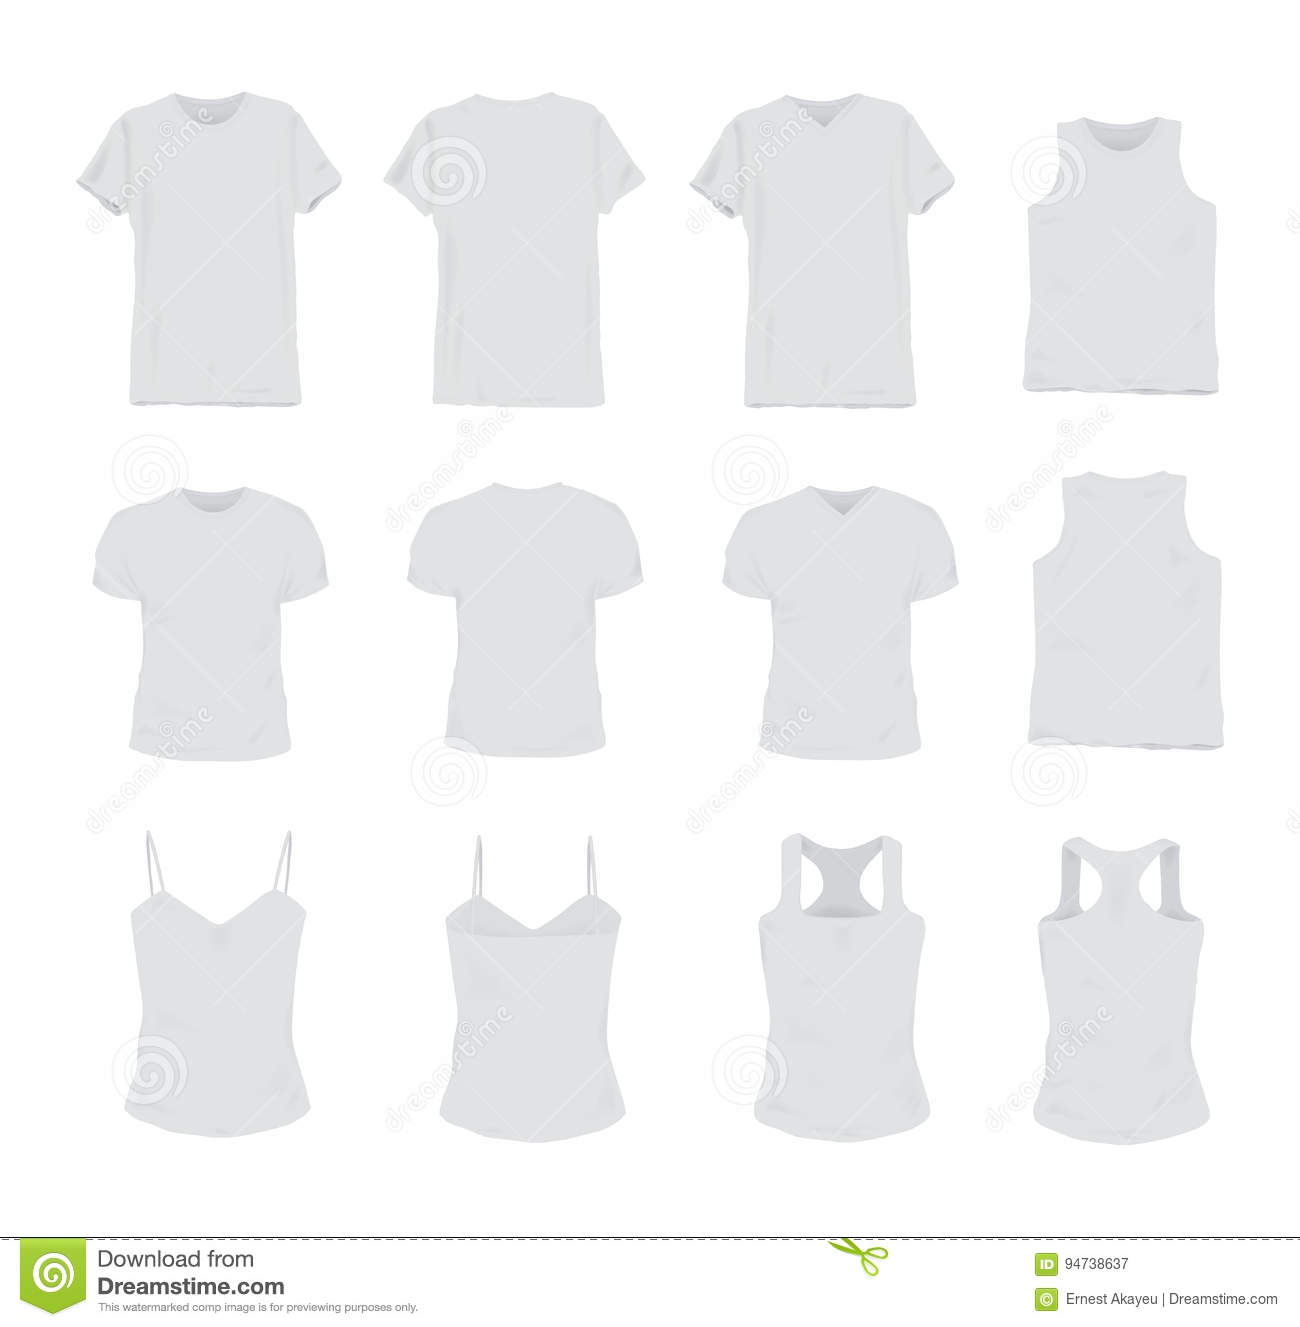 3cc9e7b8a45a0 Set of different realistic white t-shirt for man and woman. Front and back  view. Shirt sleeveless